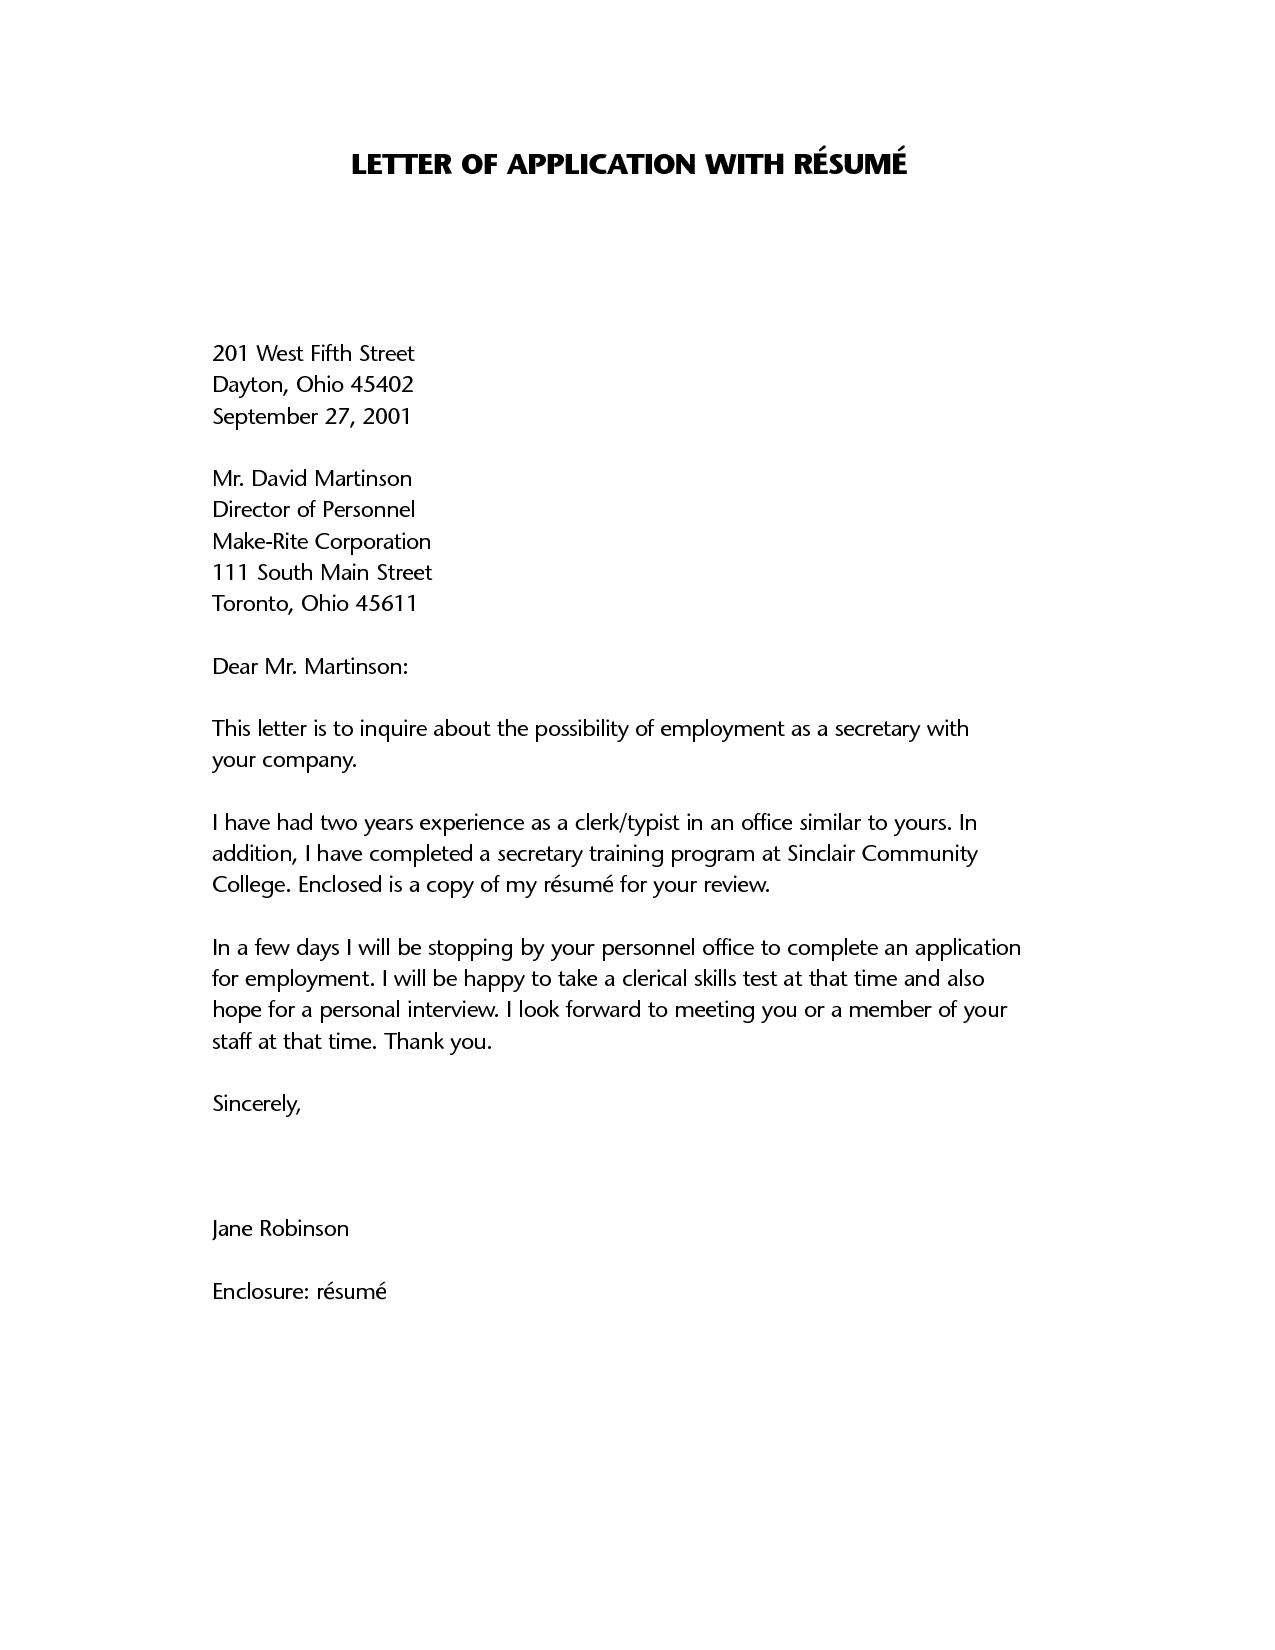 Cover Letter Resume Sample Resume Application Letter A Letter Of Application Is A